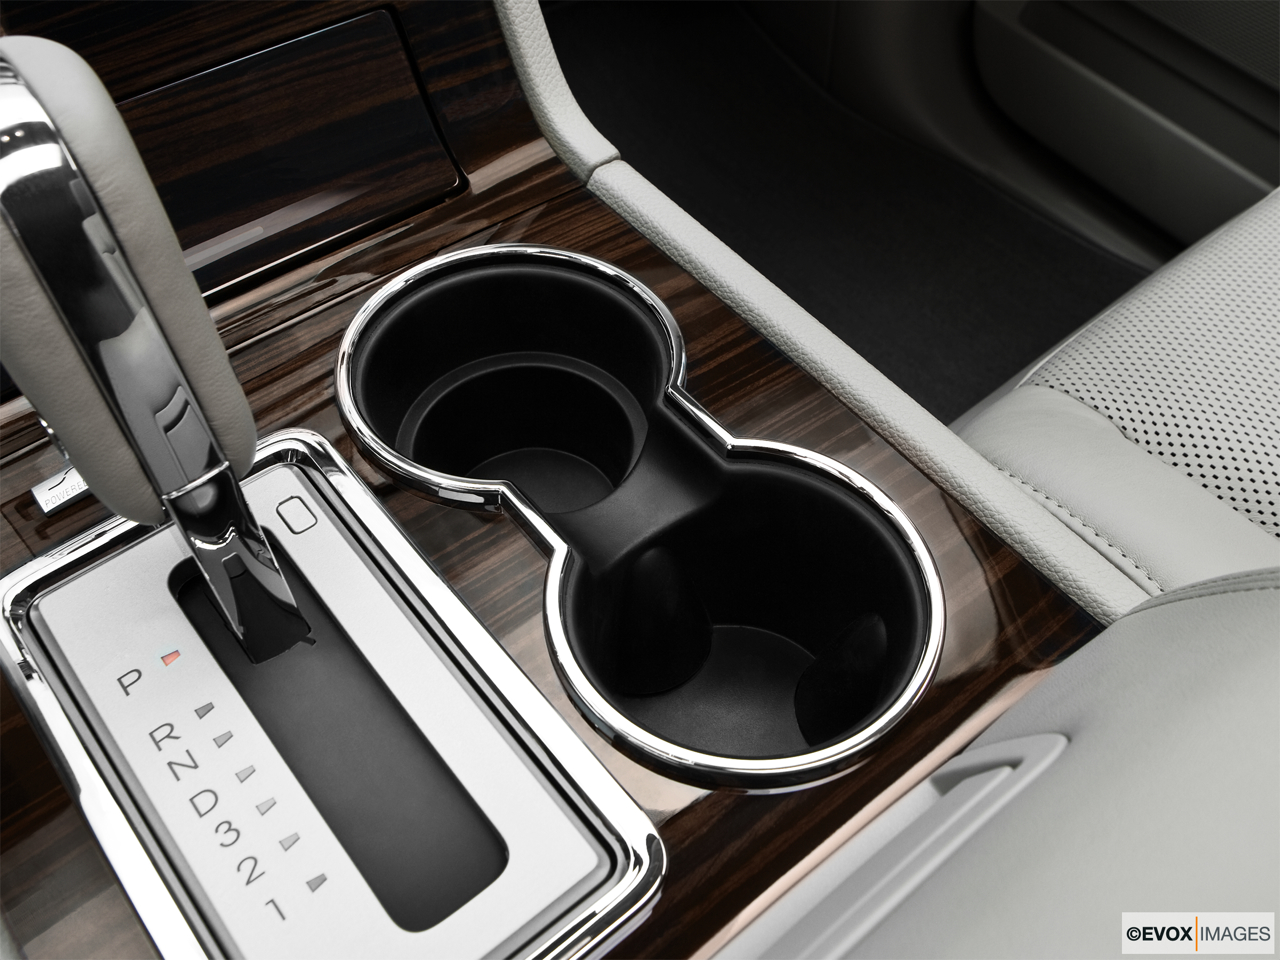 2010 Lincoln Navigator Base Cup holders.